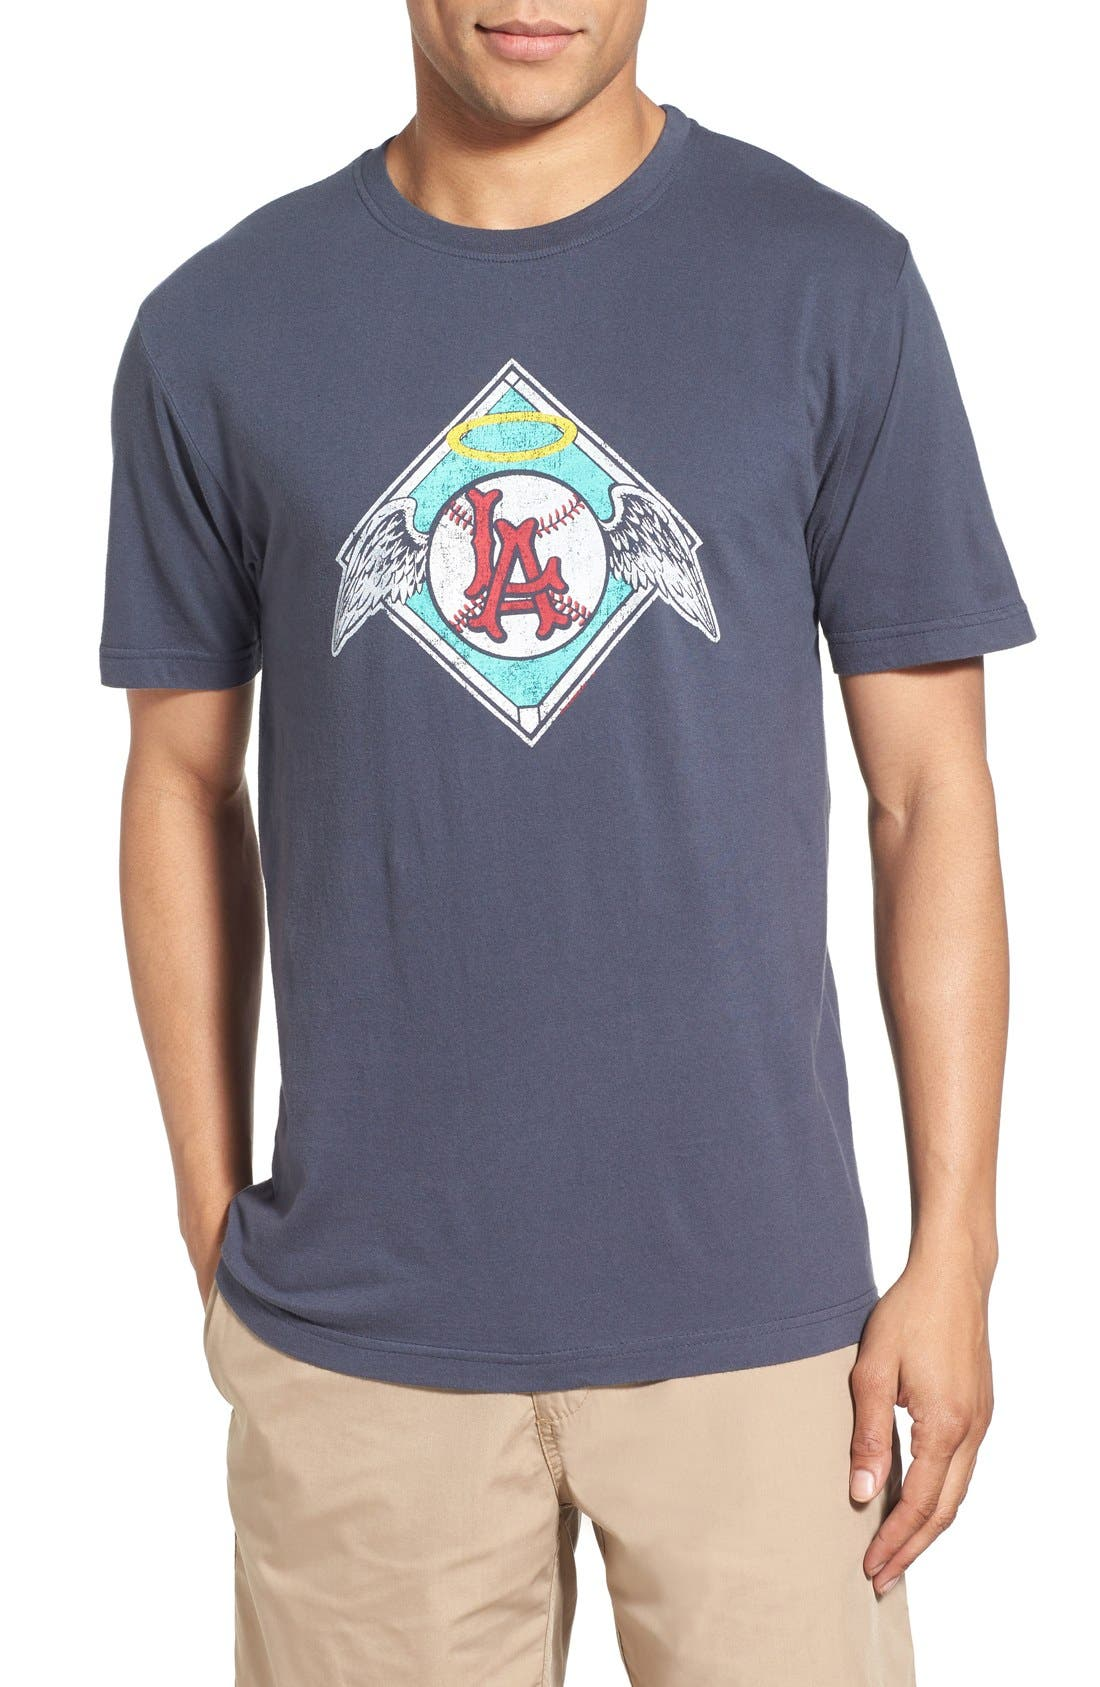 Red Jacket 'Los Angeles Angels - Brass Tacks' Trim Fit T-Shirt